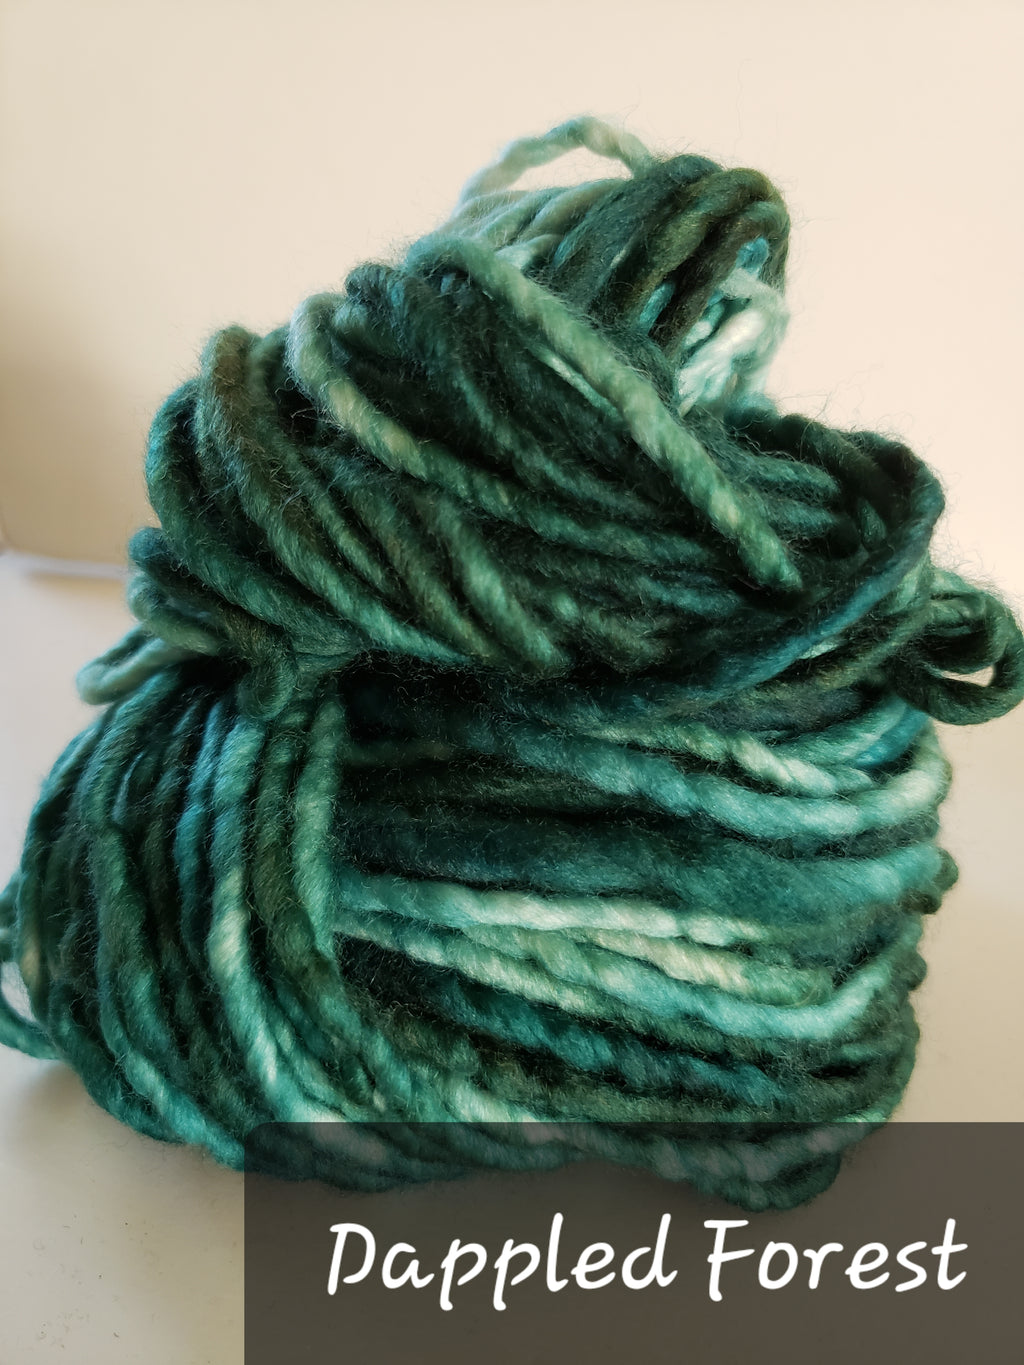 RSS157-2 - DAPPLED FOREST - Hand Dyed Chunky Yarn for Rug Hooking